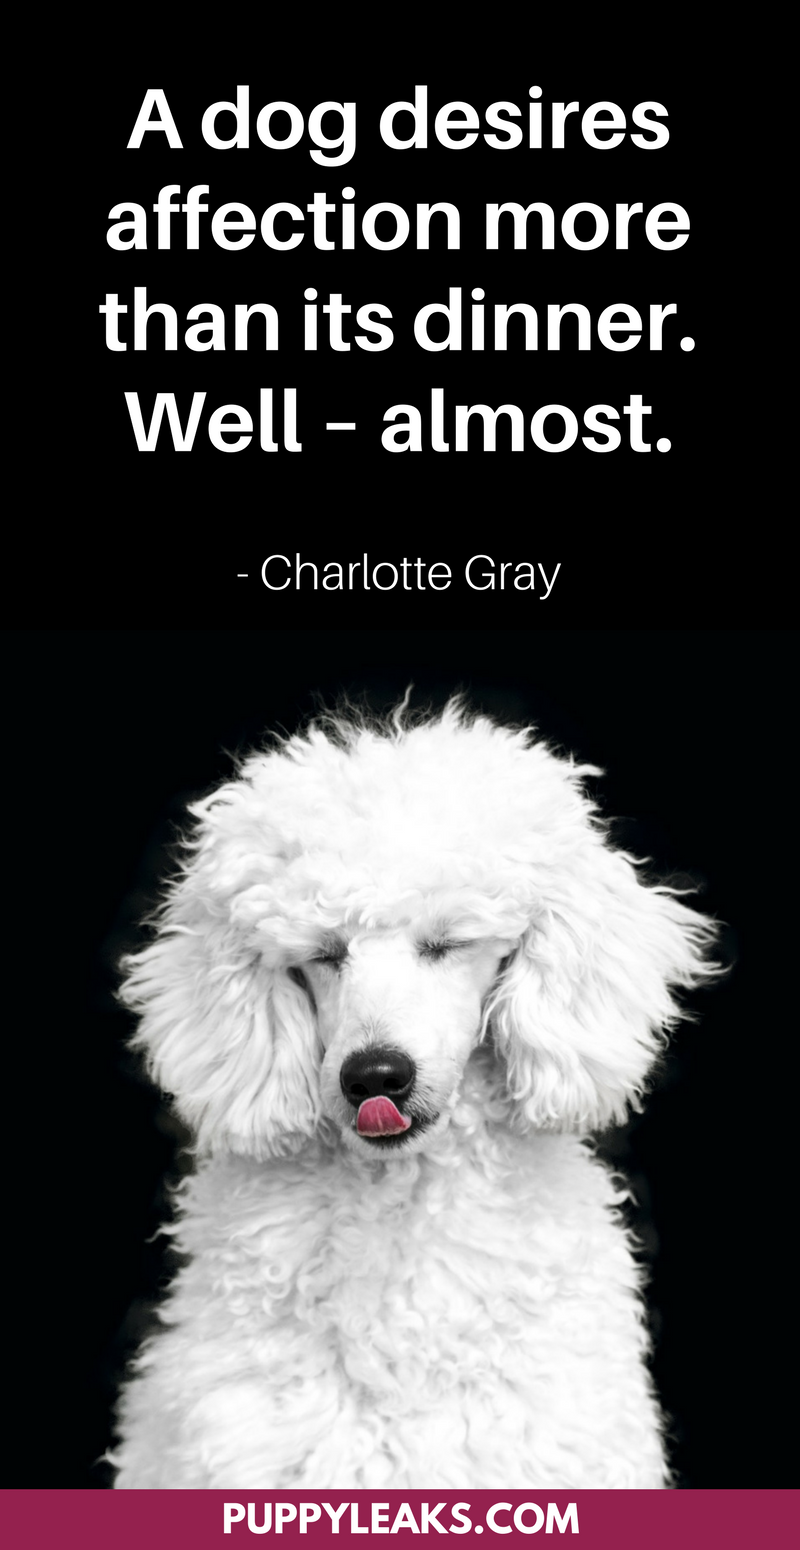 30 Cute Funny Dog Quotes Puppy Leaks Dog Names Poodle Dog Girl Dog Names